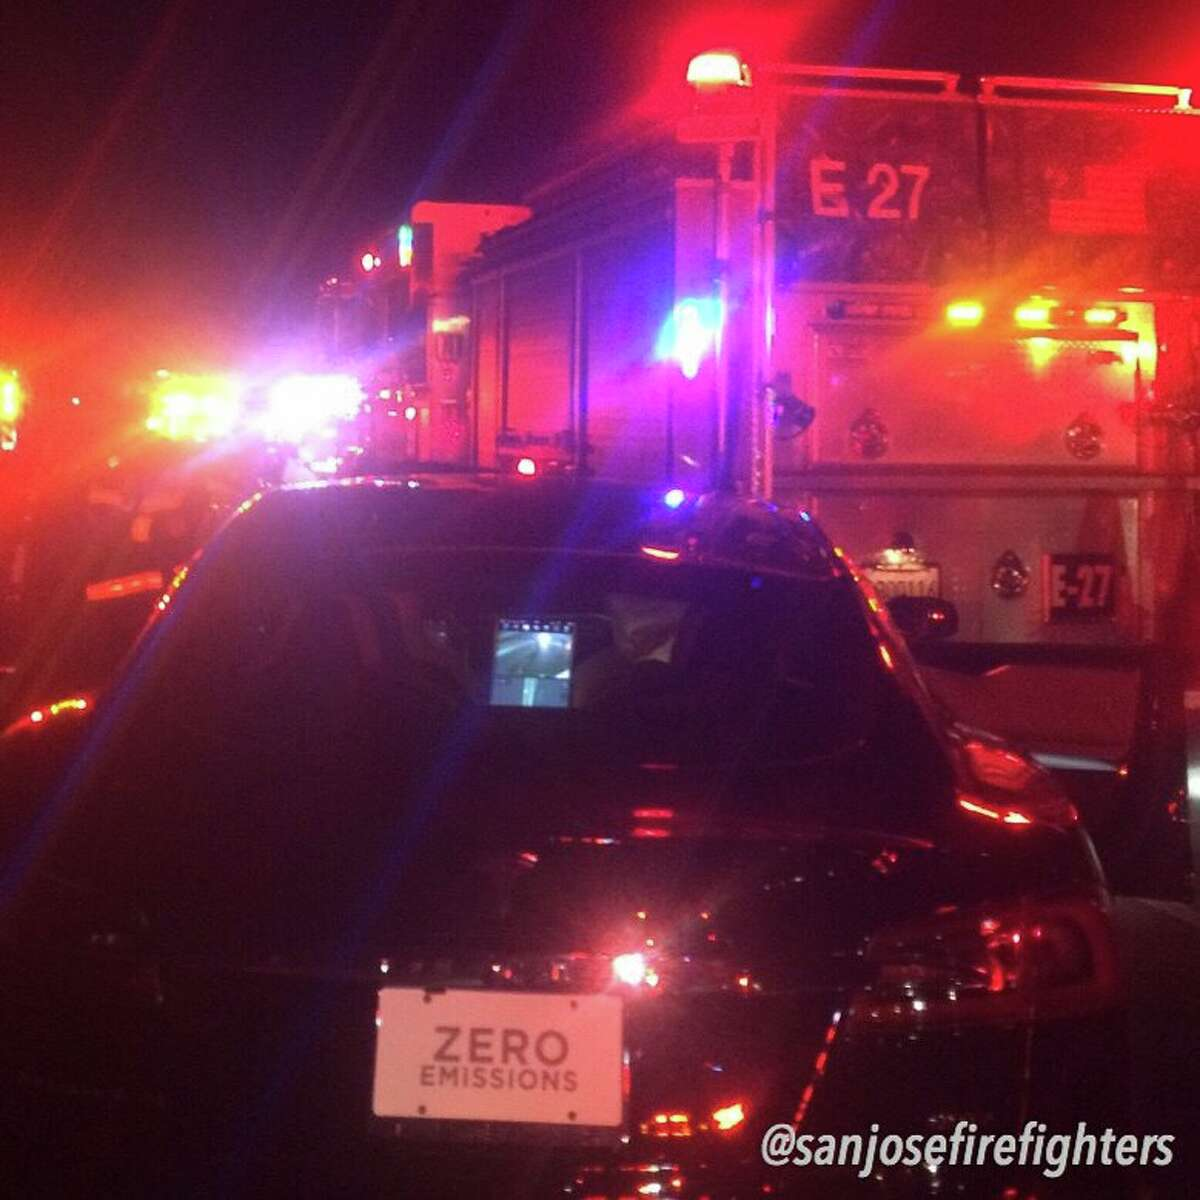 For the second time in recent months San Jose Fire Fighters narrowly escaped serious injury. This time a Tesla